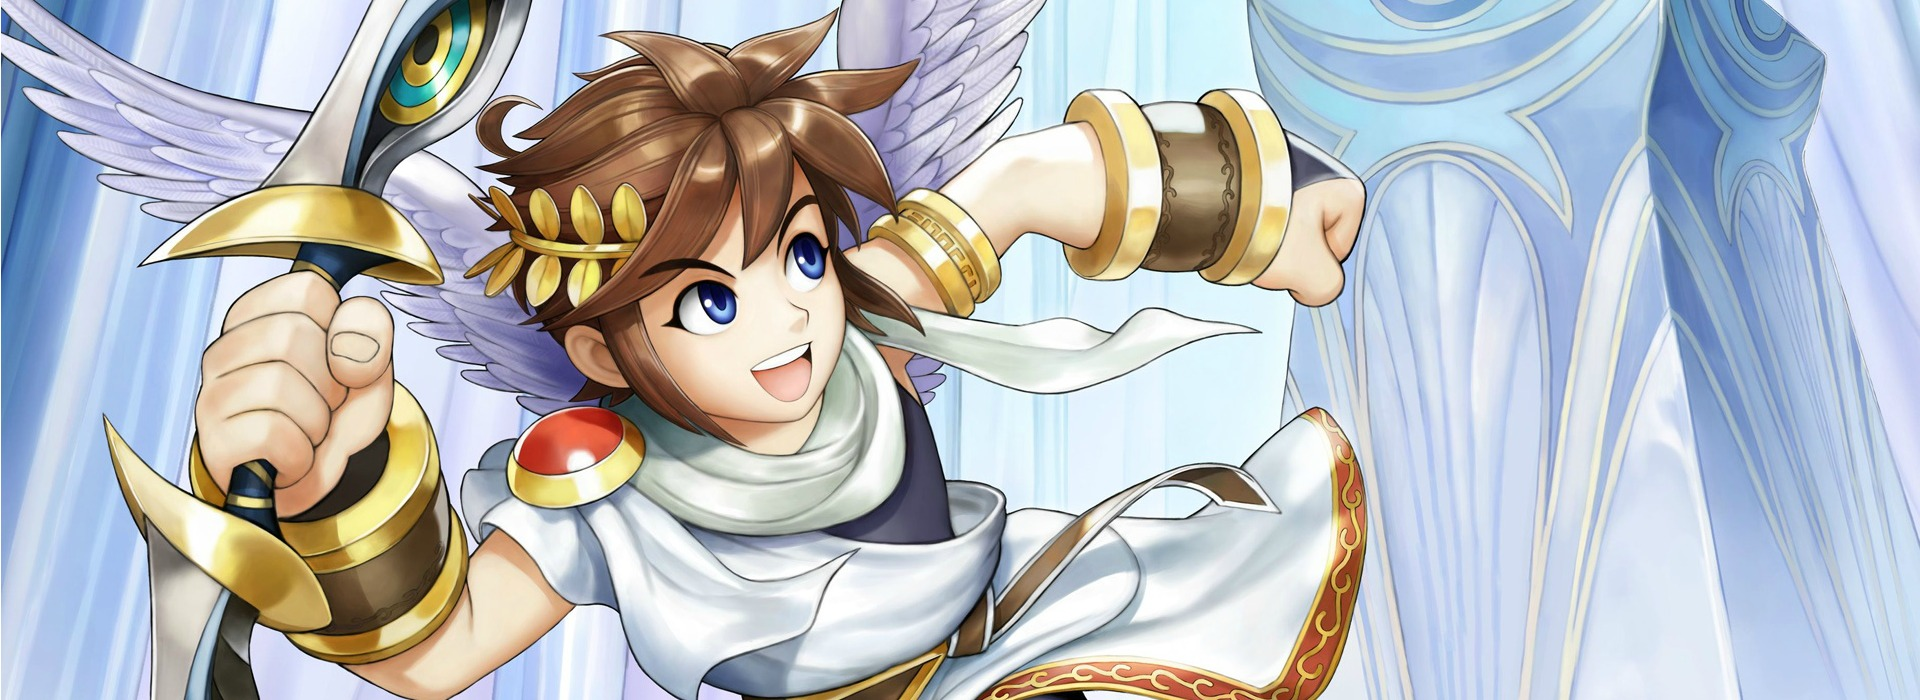 Kid Icarus Uprising Review – 3DS – Nintendo Insider